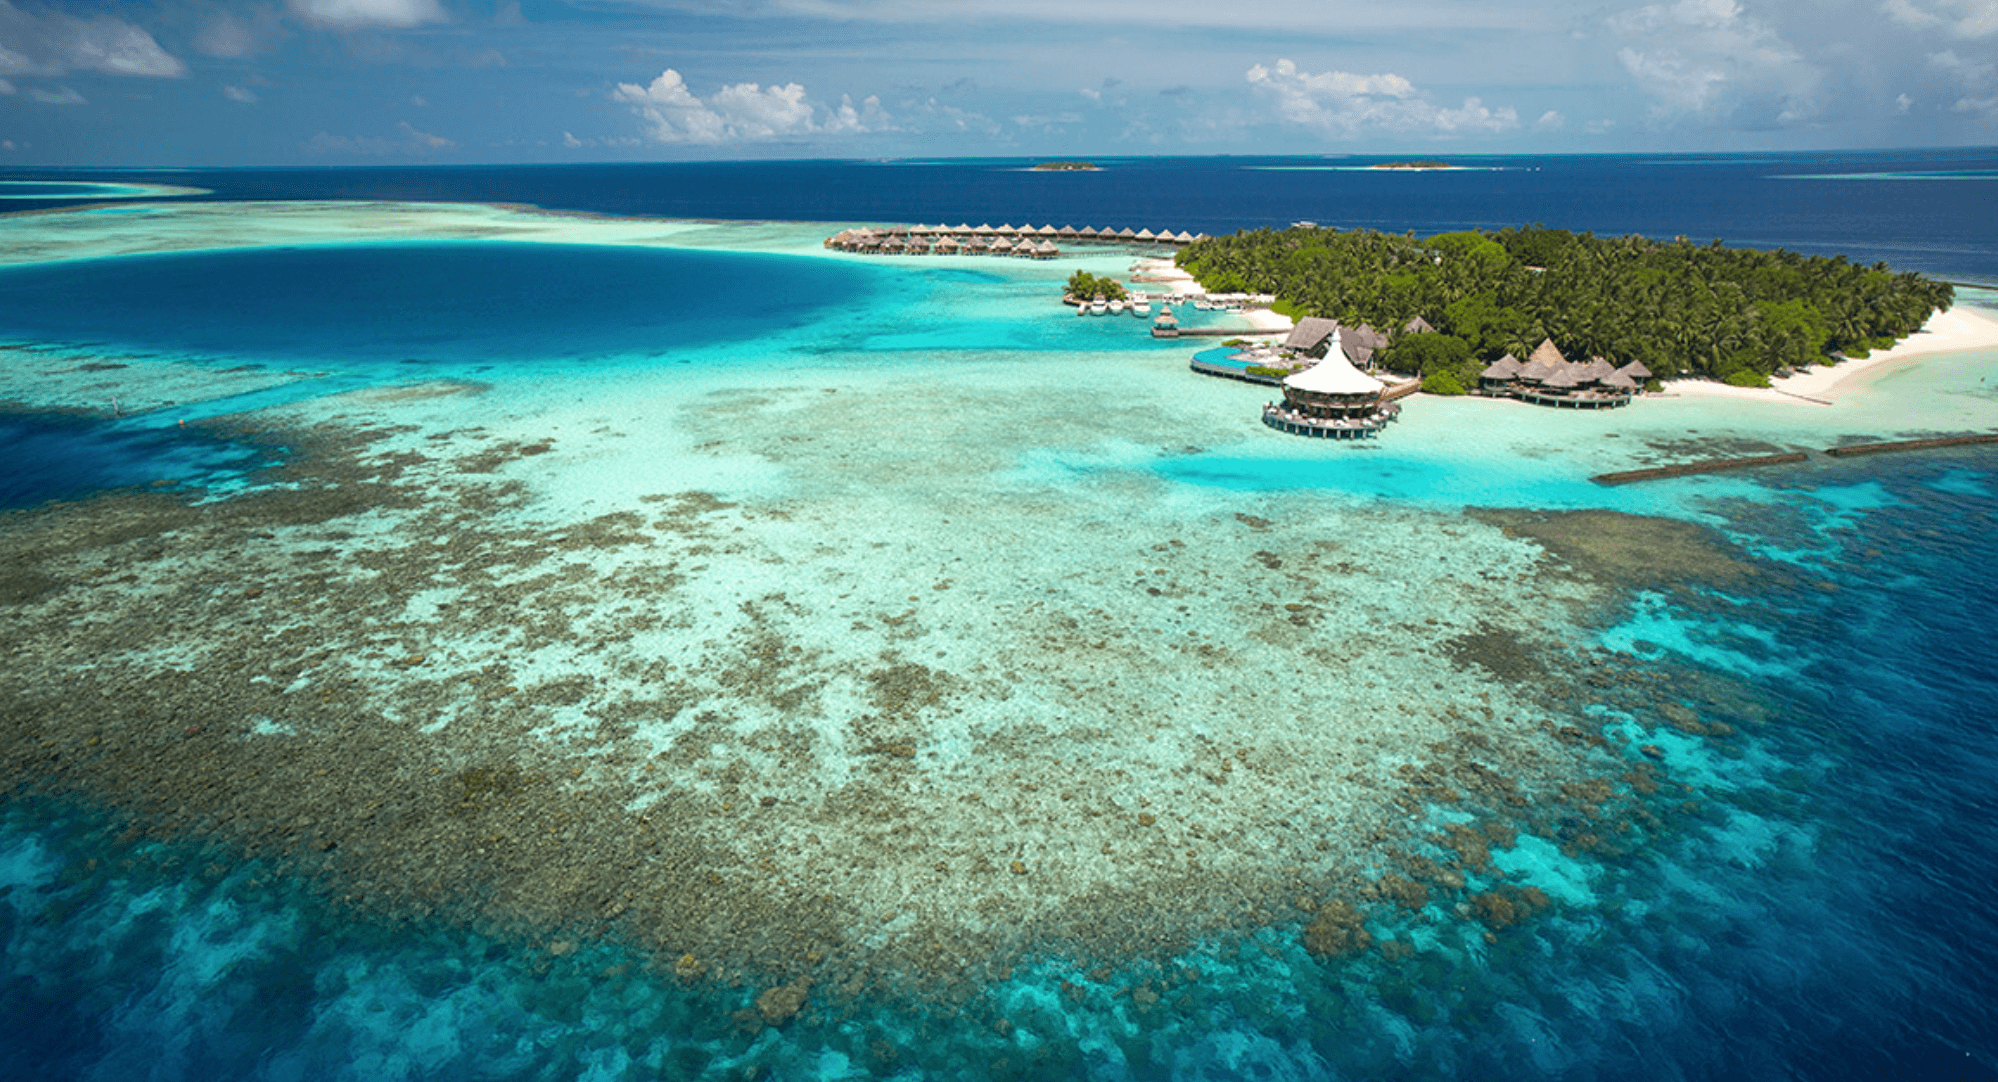 View of Baros resort and reef in The Maldives